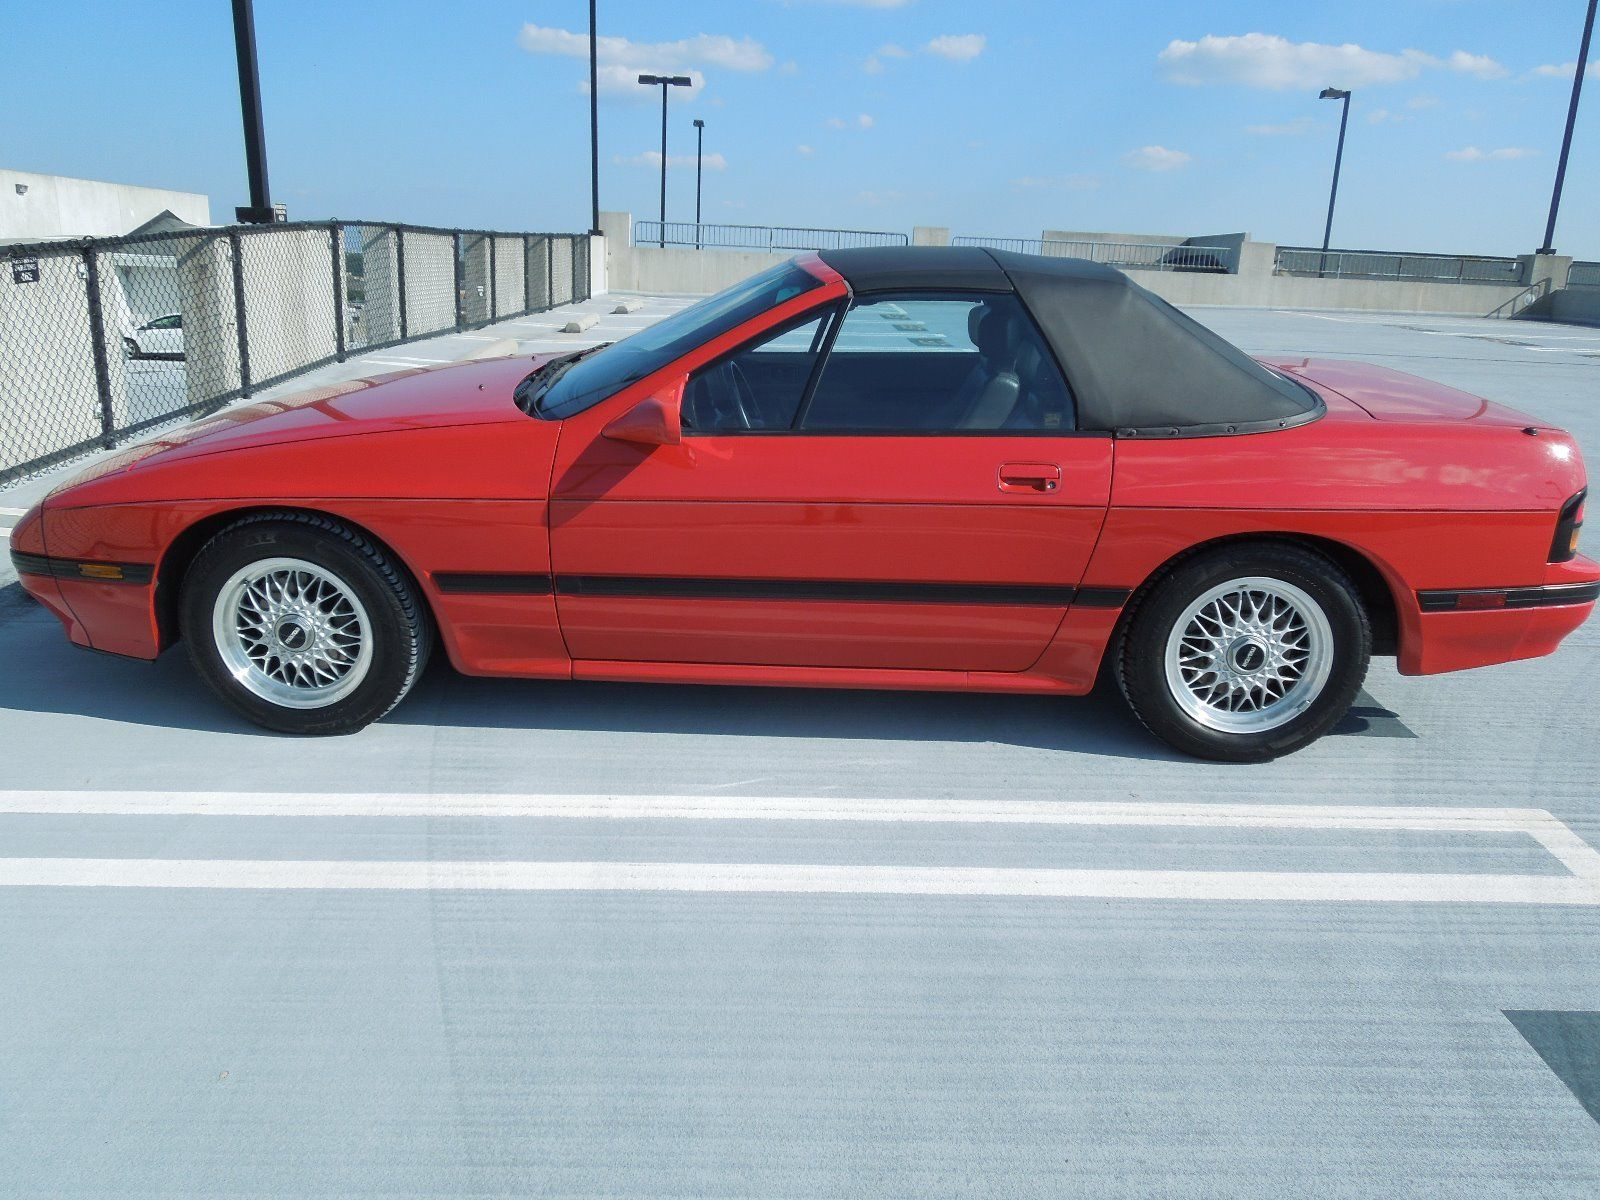 1988 Mazda RX-7 convertible profile